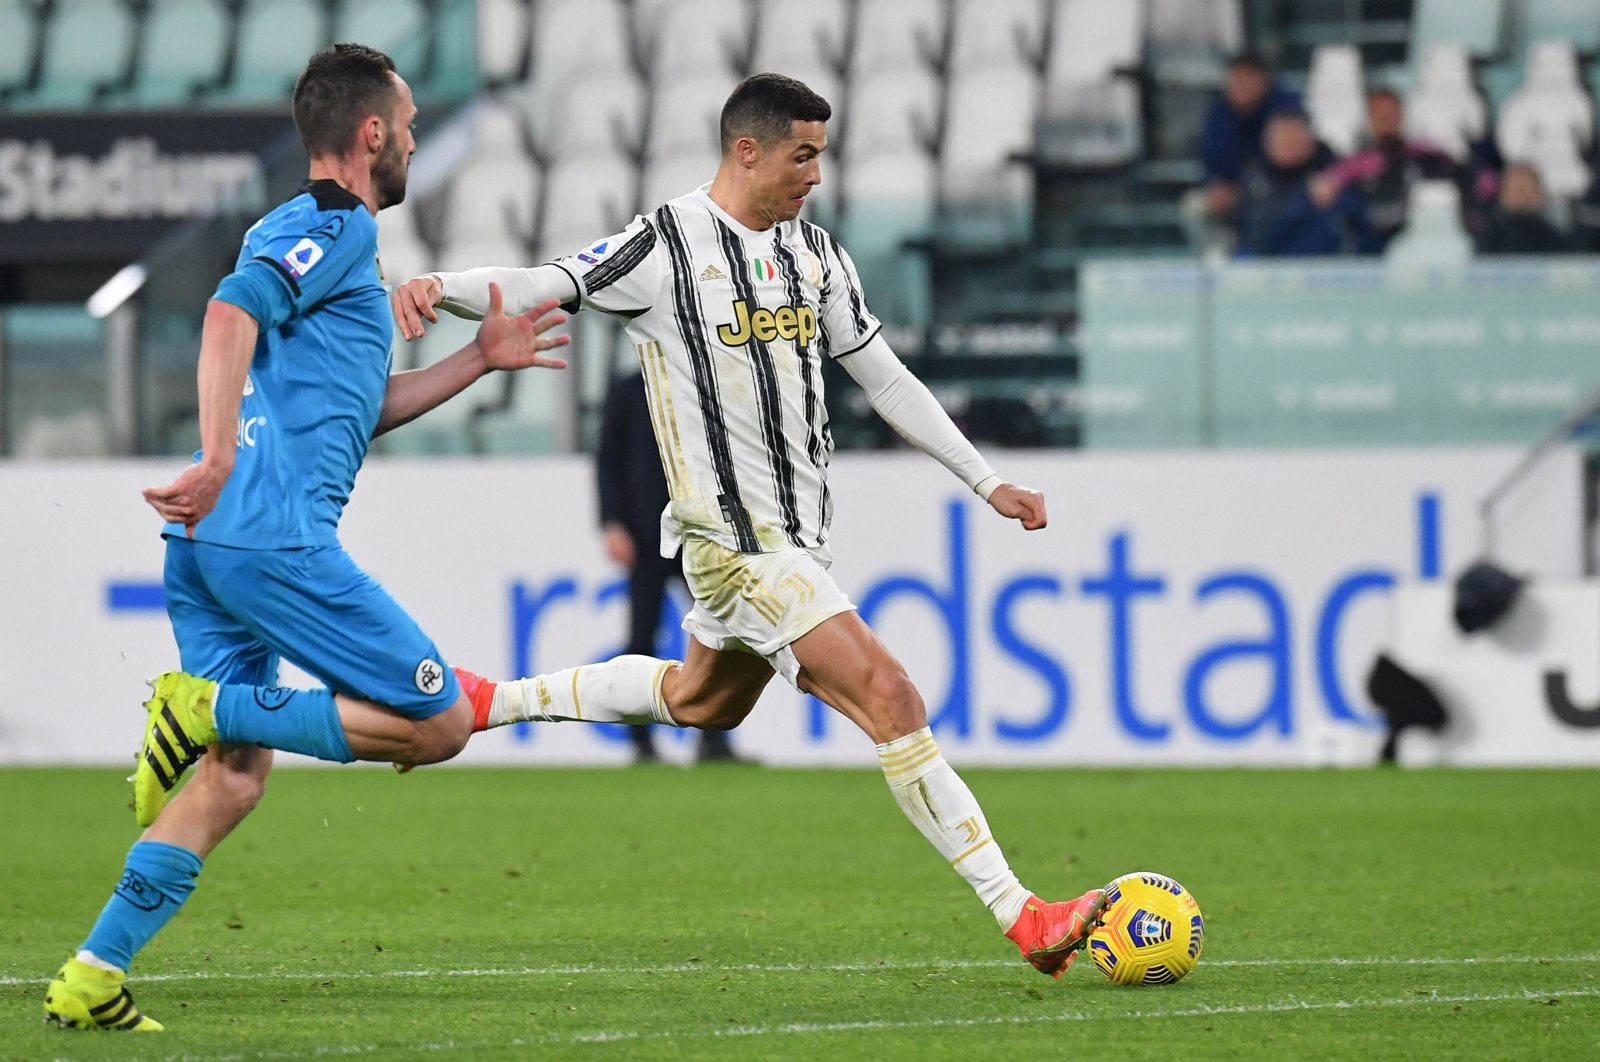 Juventus' Portuguese forward Cristiano Ronaldo prepares to shoot and score his side's third goal against Spezia at the Juventus stadium in Turin, Italy, March 02, 2021. (AFP Photo)